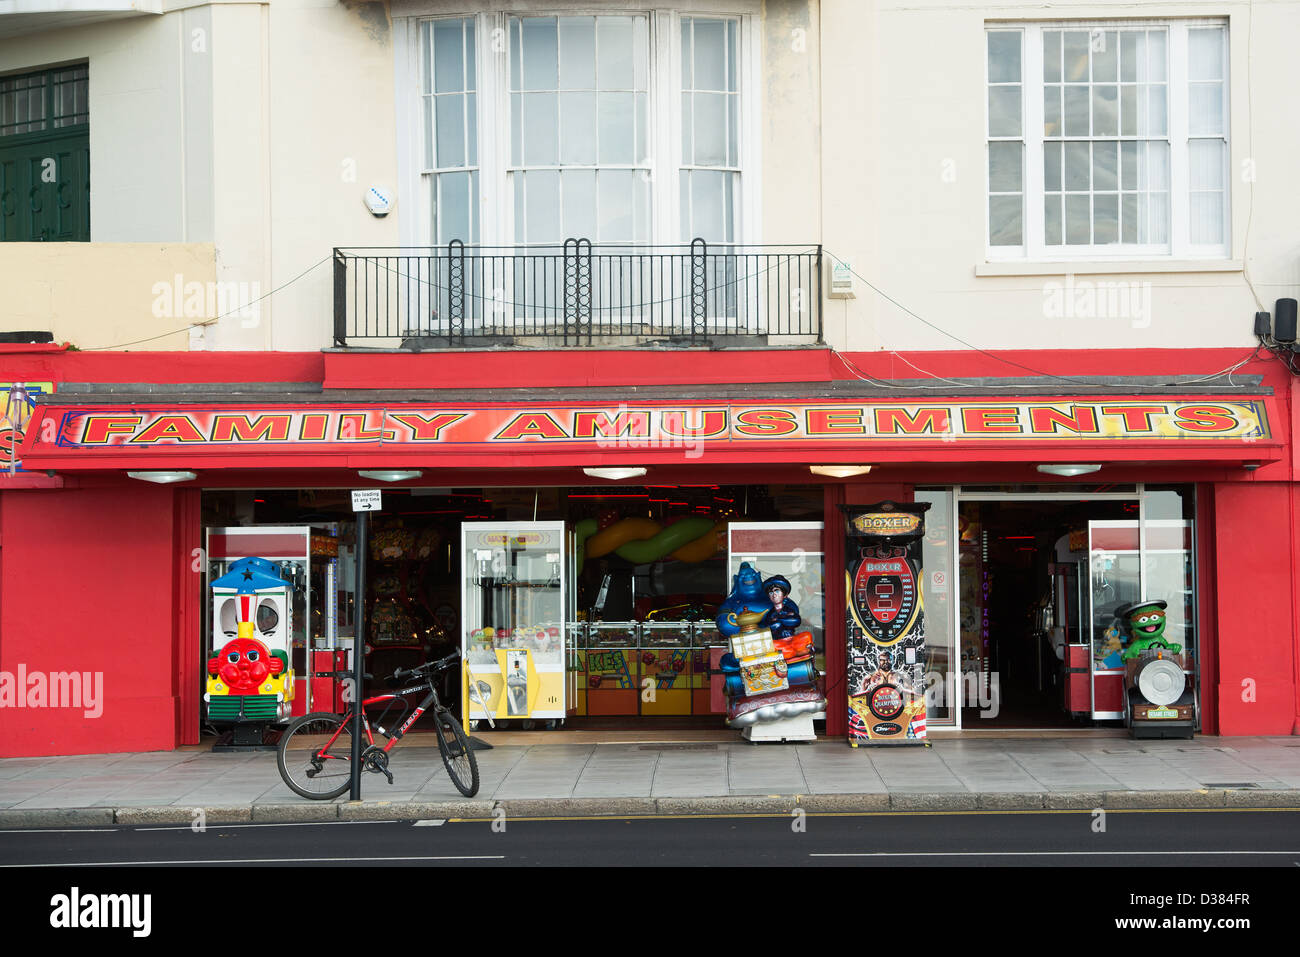 The red exterior of a Family Amusement arcade in Hastings near the promenade. - Stock Image